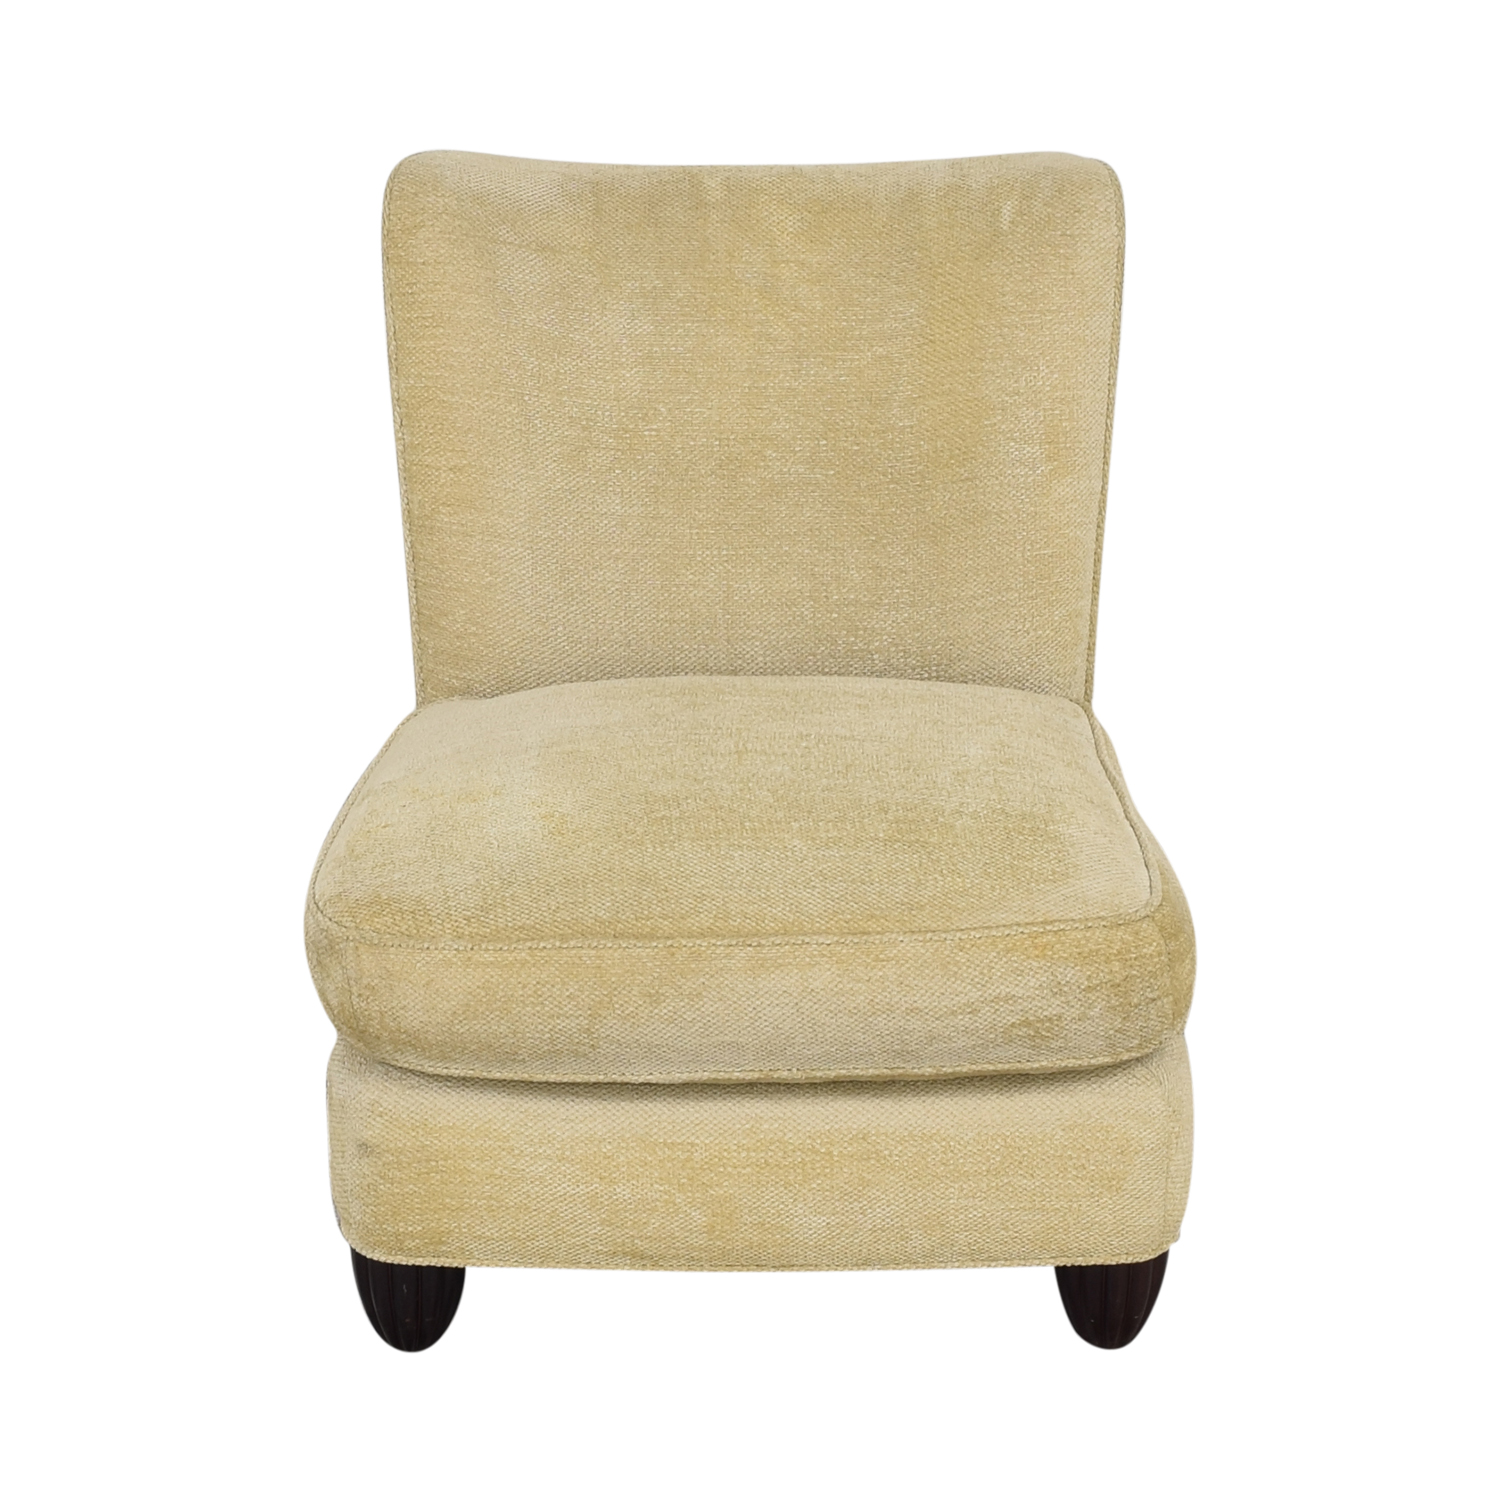 Baker Furniture Baker Furniture Barbara Barry Slipper Chair used